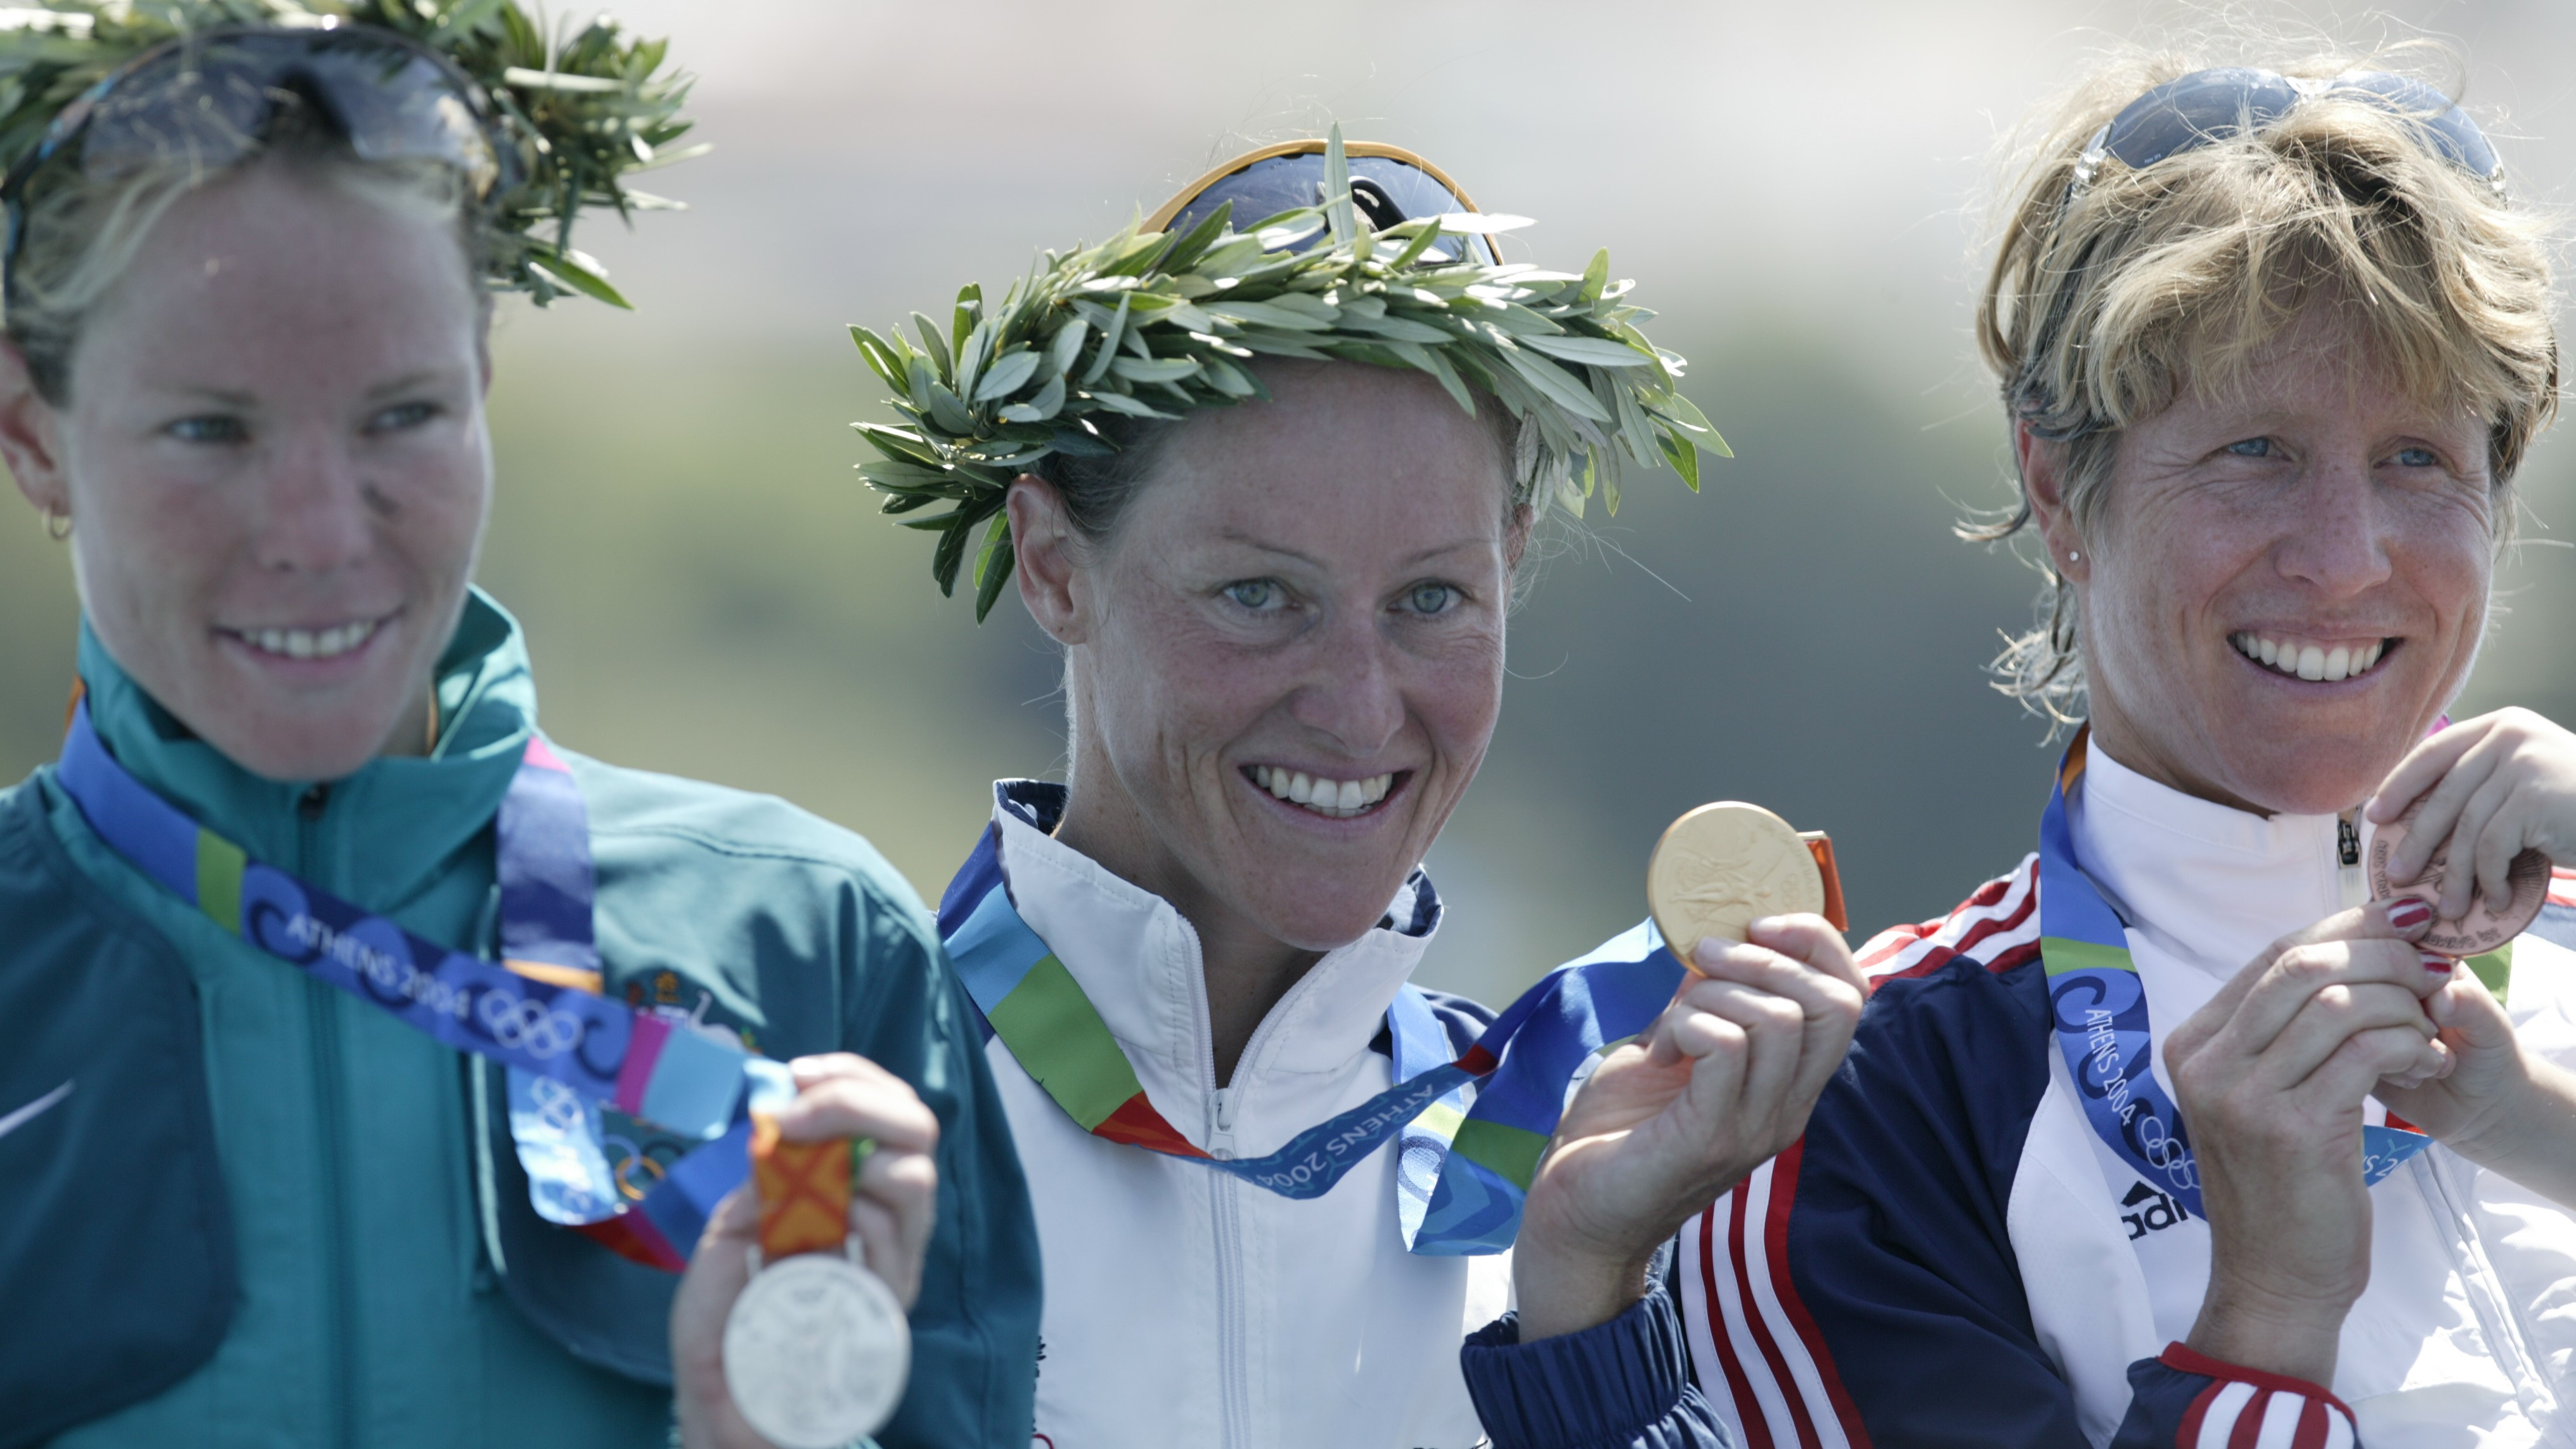 The 3 medallists at the Athens 2004 Olympics